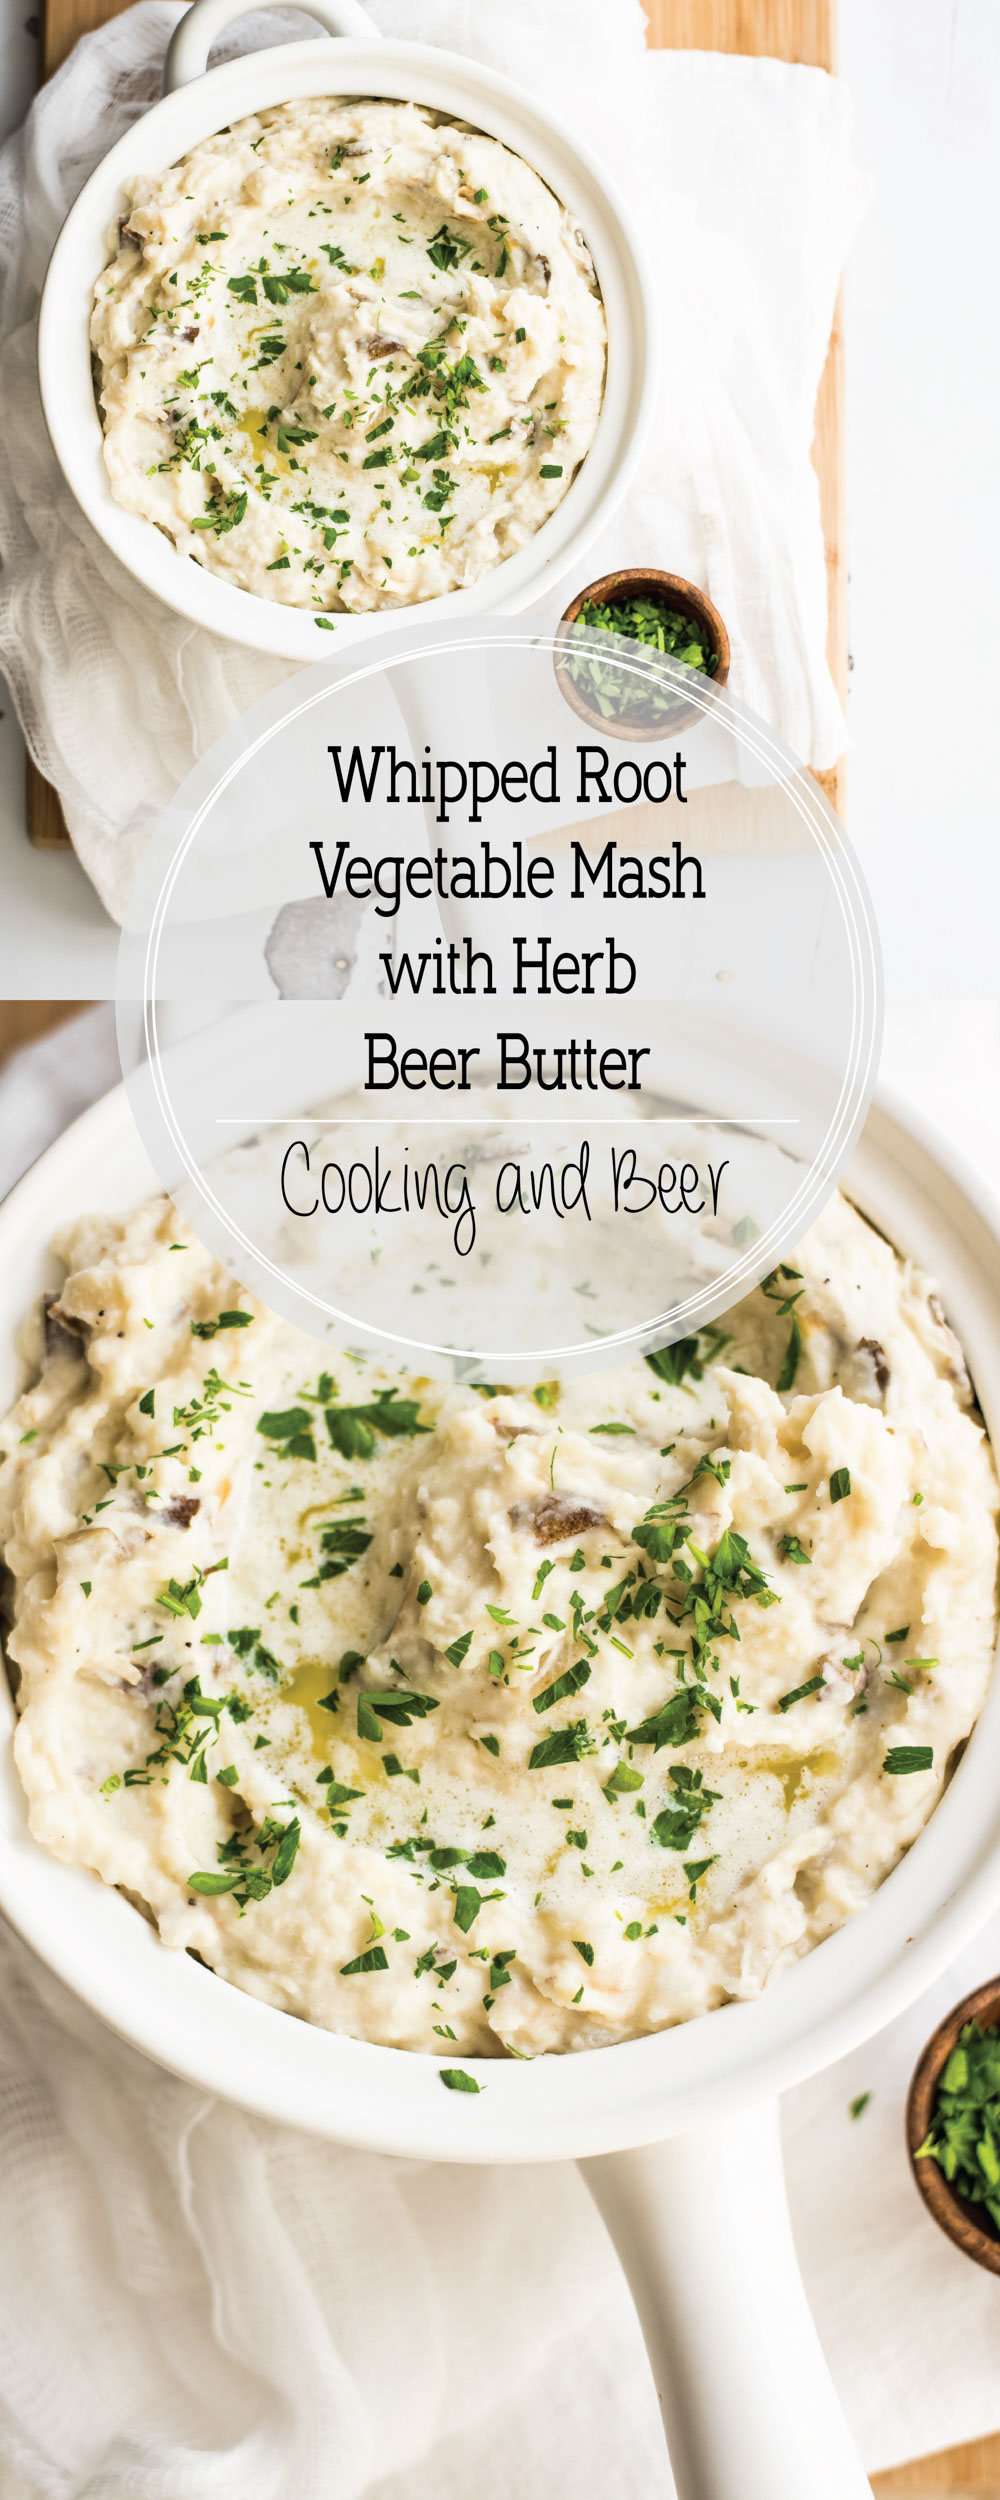 Whipped Root Vegetable Mash with Herb Beer Butter is the perfect side dish for your Thanksgiving spreads! Parsnips and turnips bring this recipe to life!